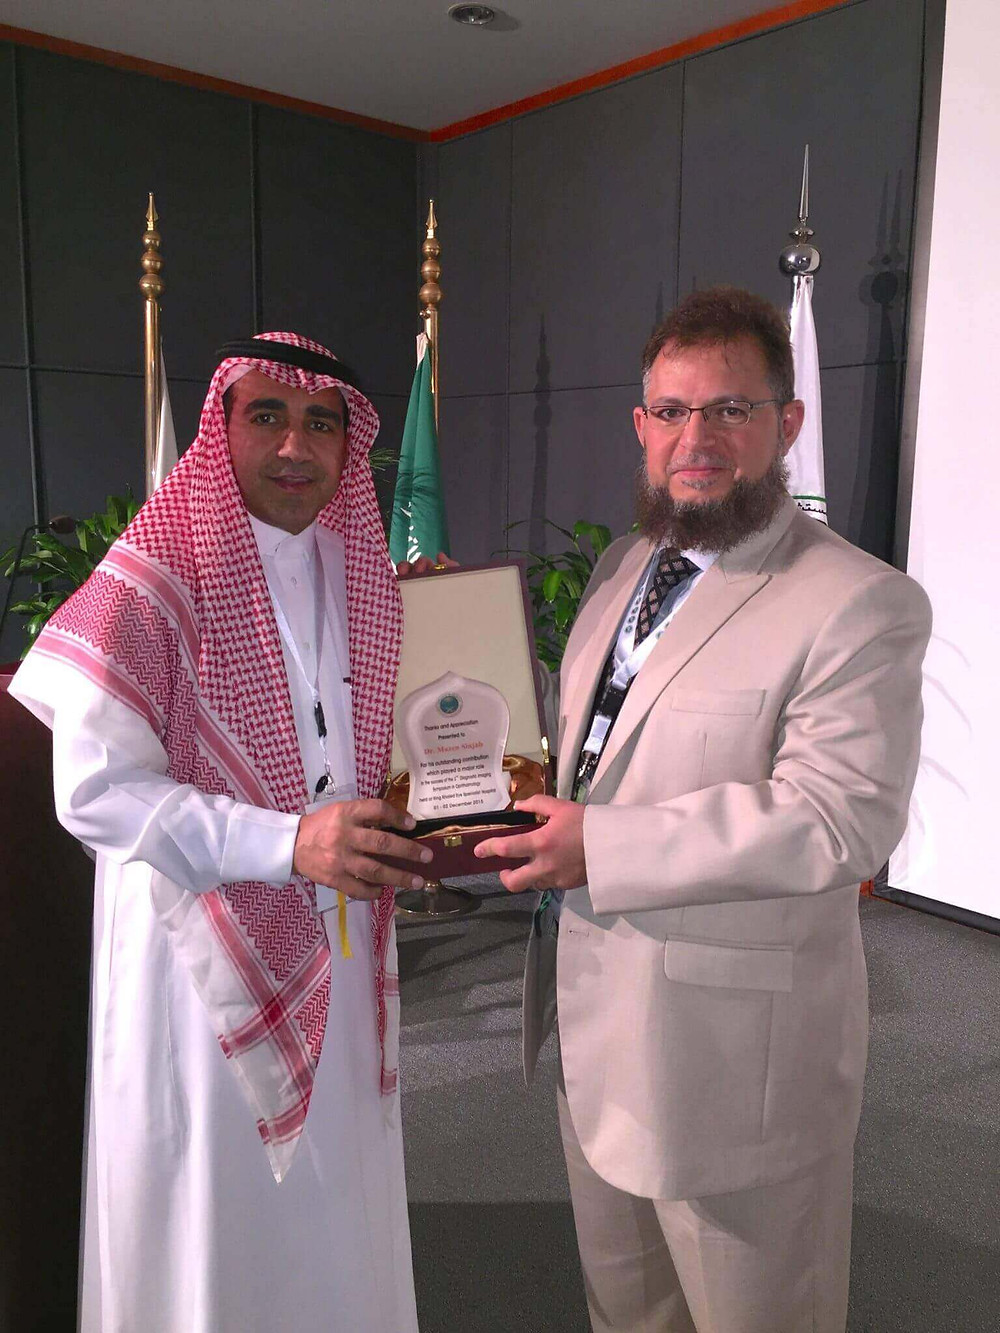 Honouring Dr. Mazen Sinjab by King Khaled Eye Specialist Hospital (KKESH), the largest academic eye specialist hospital in the Middle East, for his outstanding educational efforts.